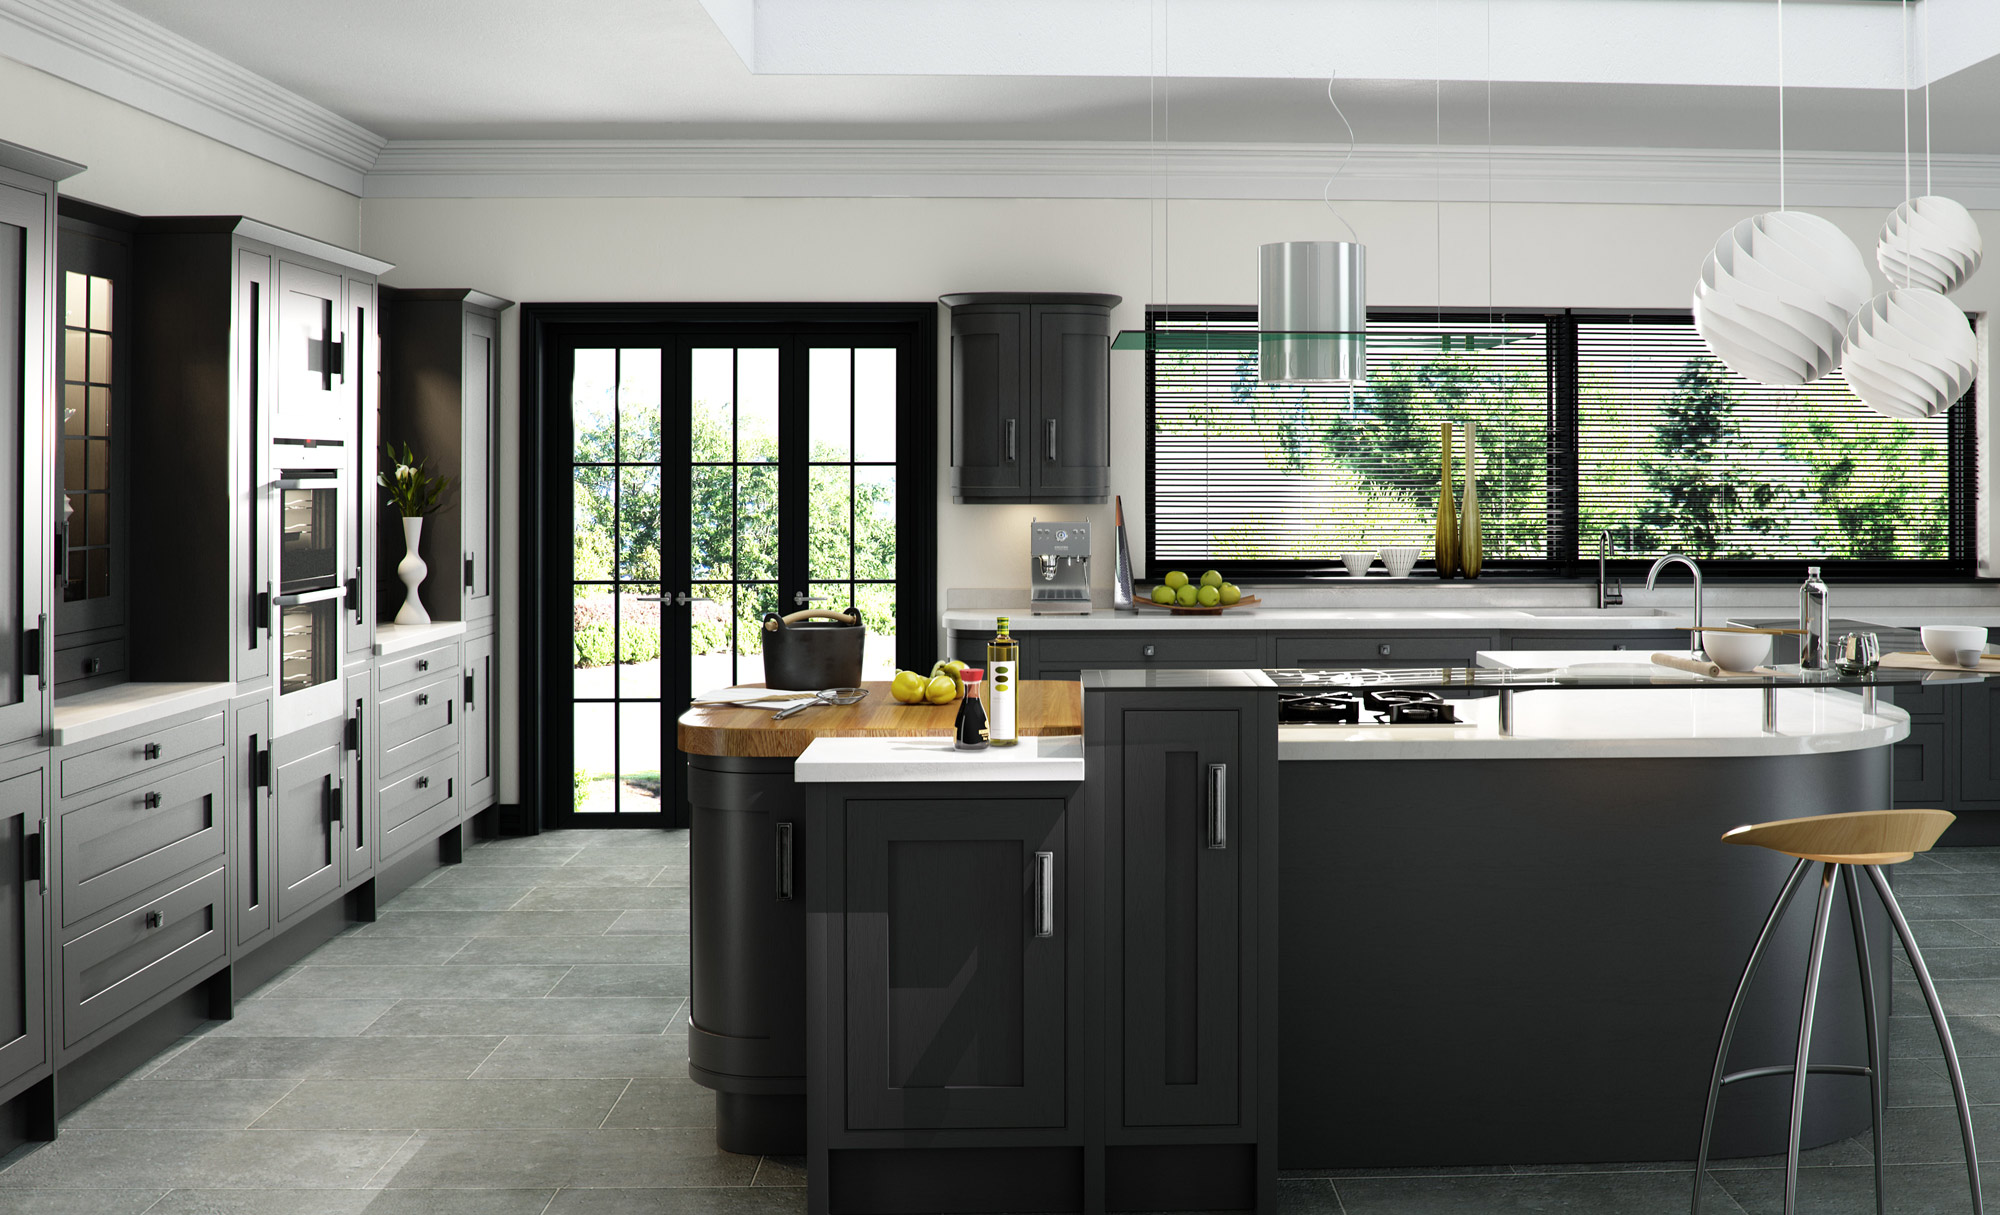 http://www.ianwoodbespokeinteriors.co.uk/wp-content/uploads/2017/01/modern-contemporary-iona-inframe-painted-graphite-kitchen-hero-1.jpg